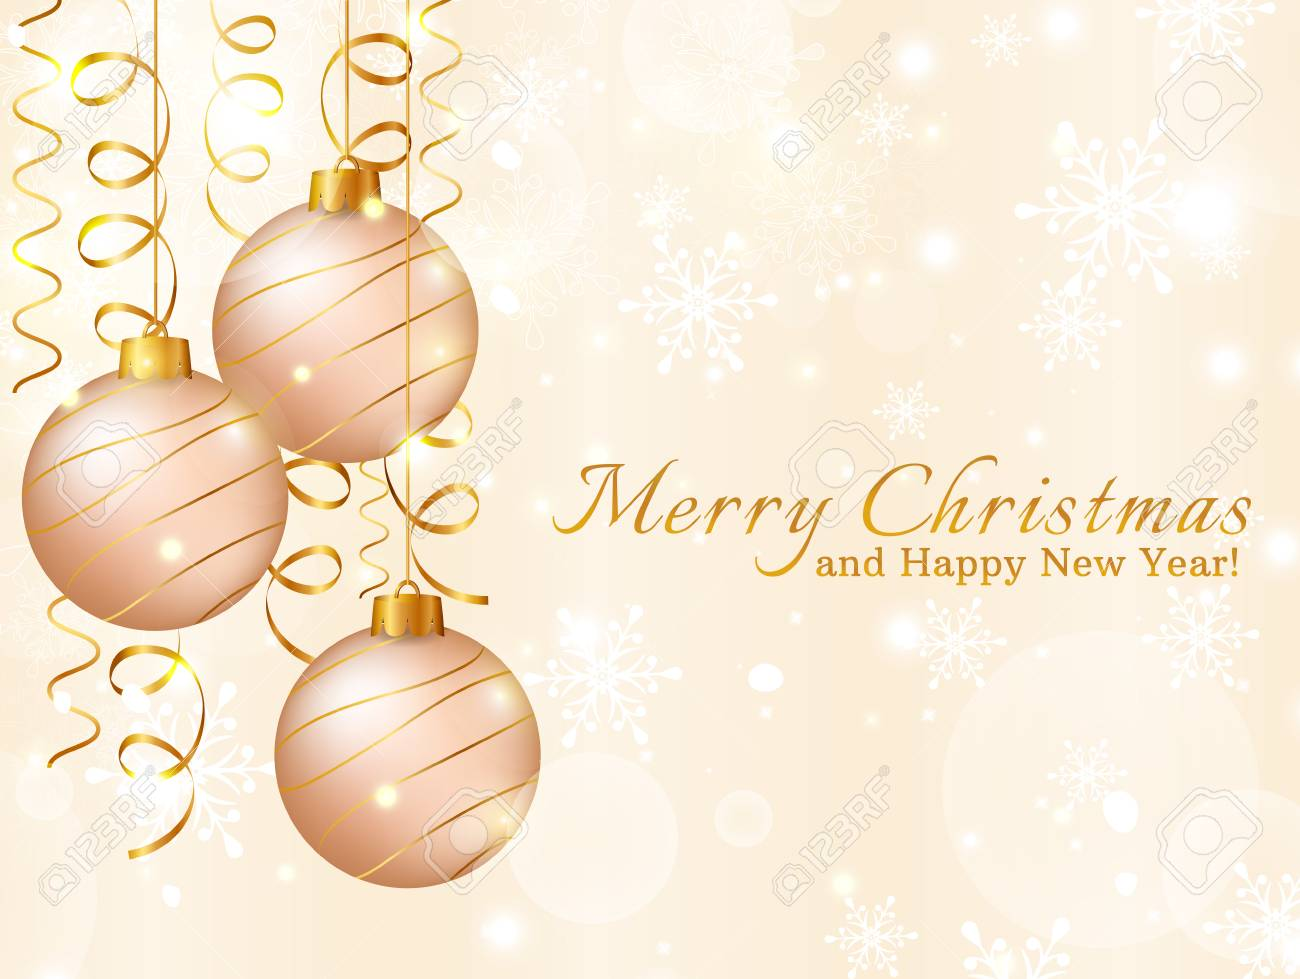 Merry Christmas And Happy New Year! Greeting Card With Christmas ...